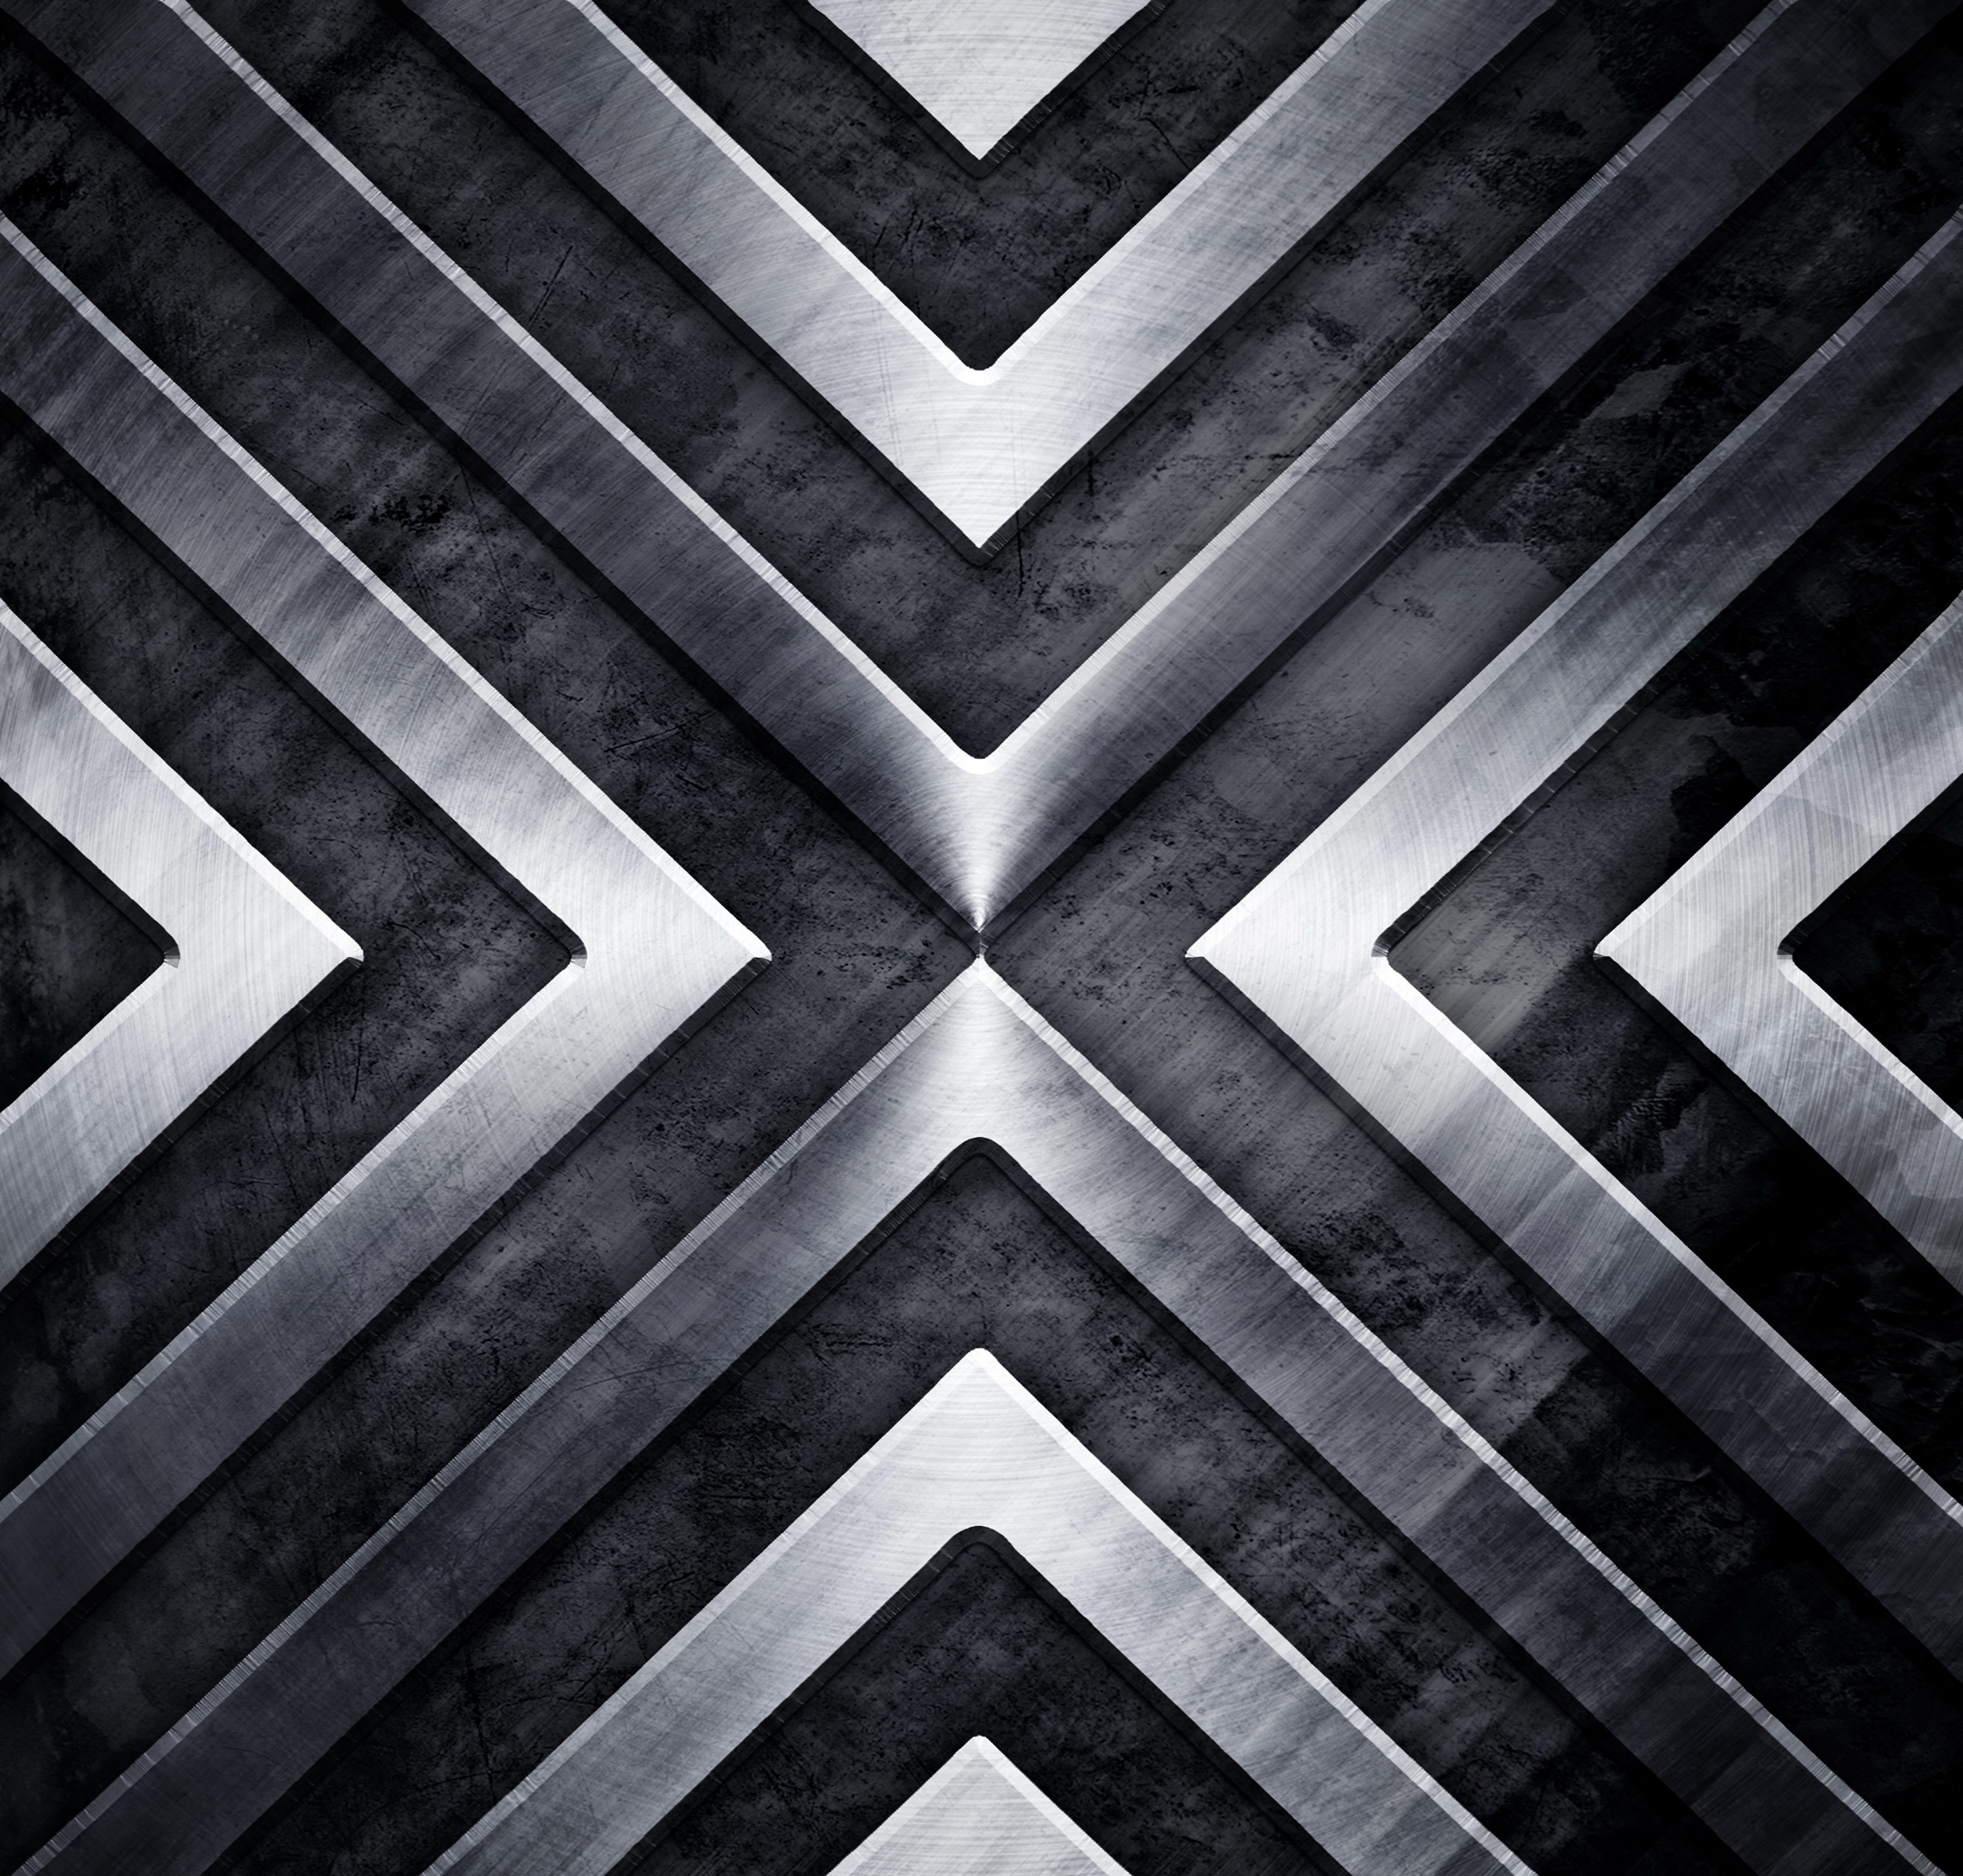 29+ Steel Textures, Patterns, Backgrounds